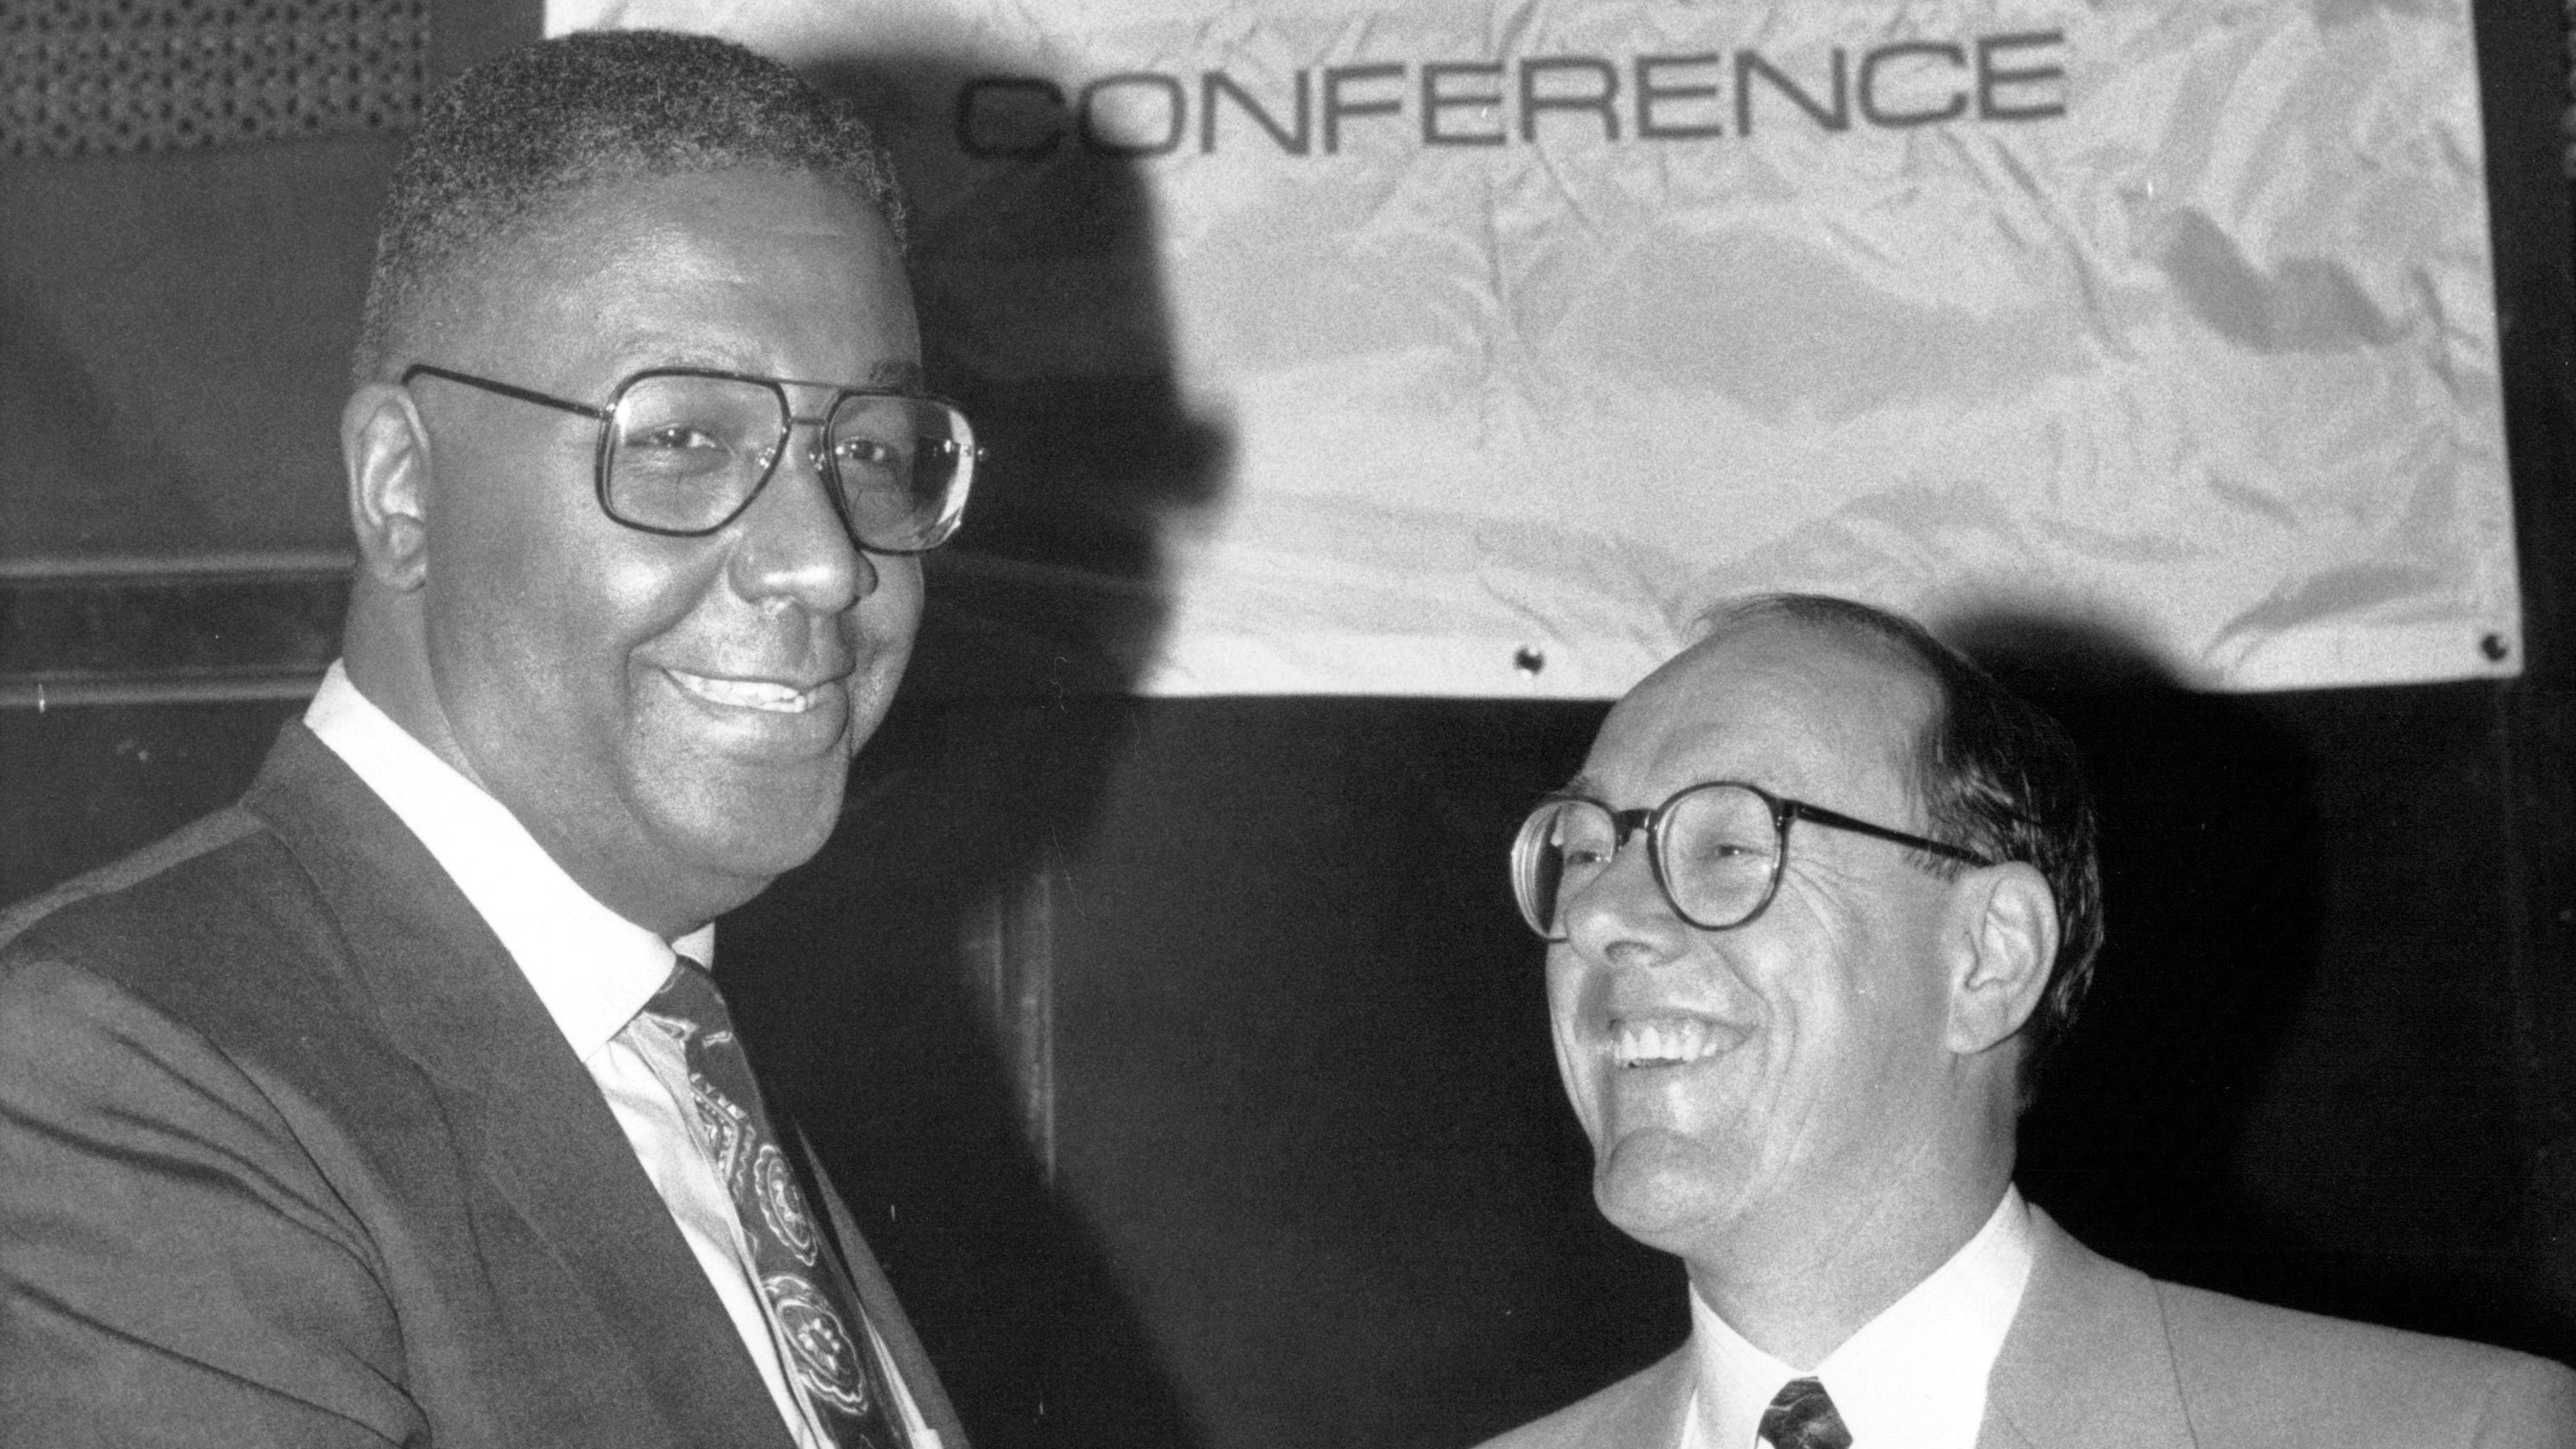 Jim Boeheim reflects on late rival John Thompson